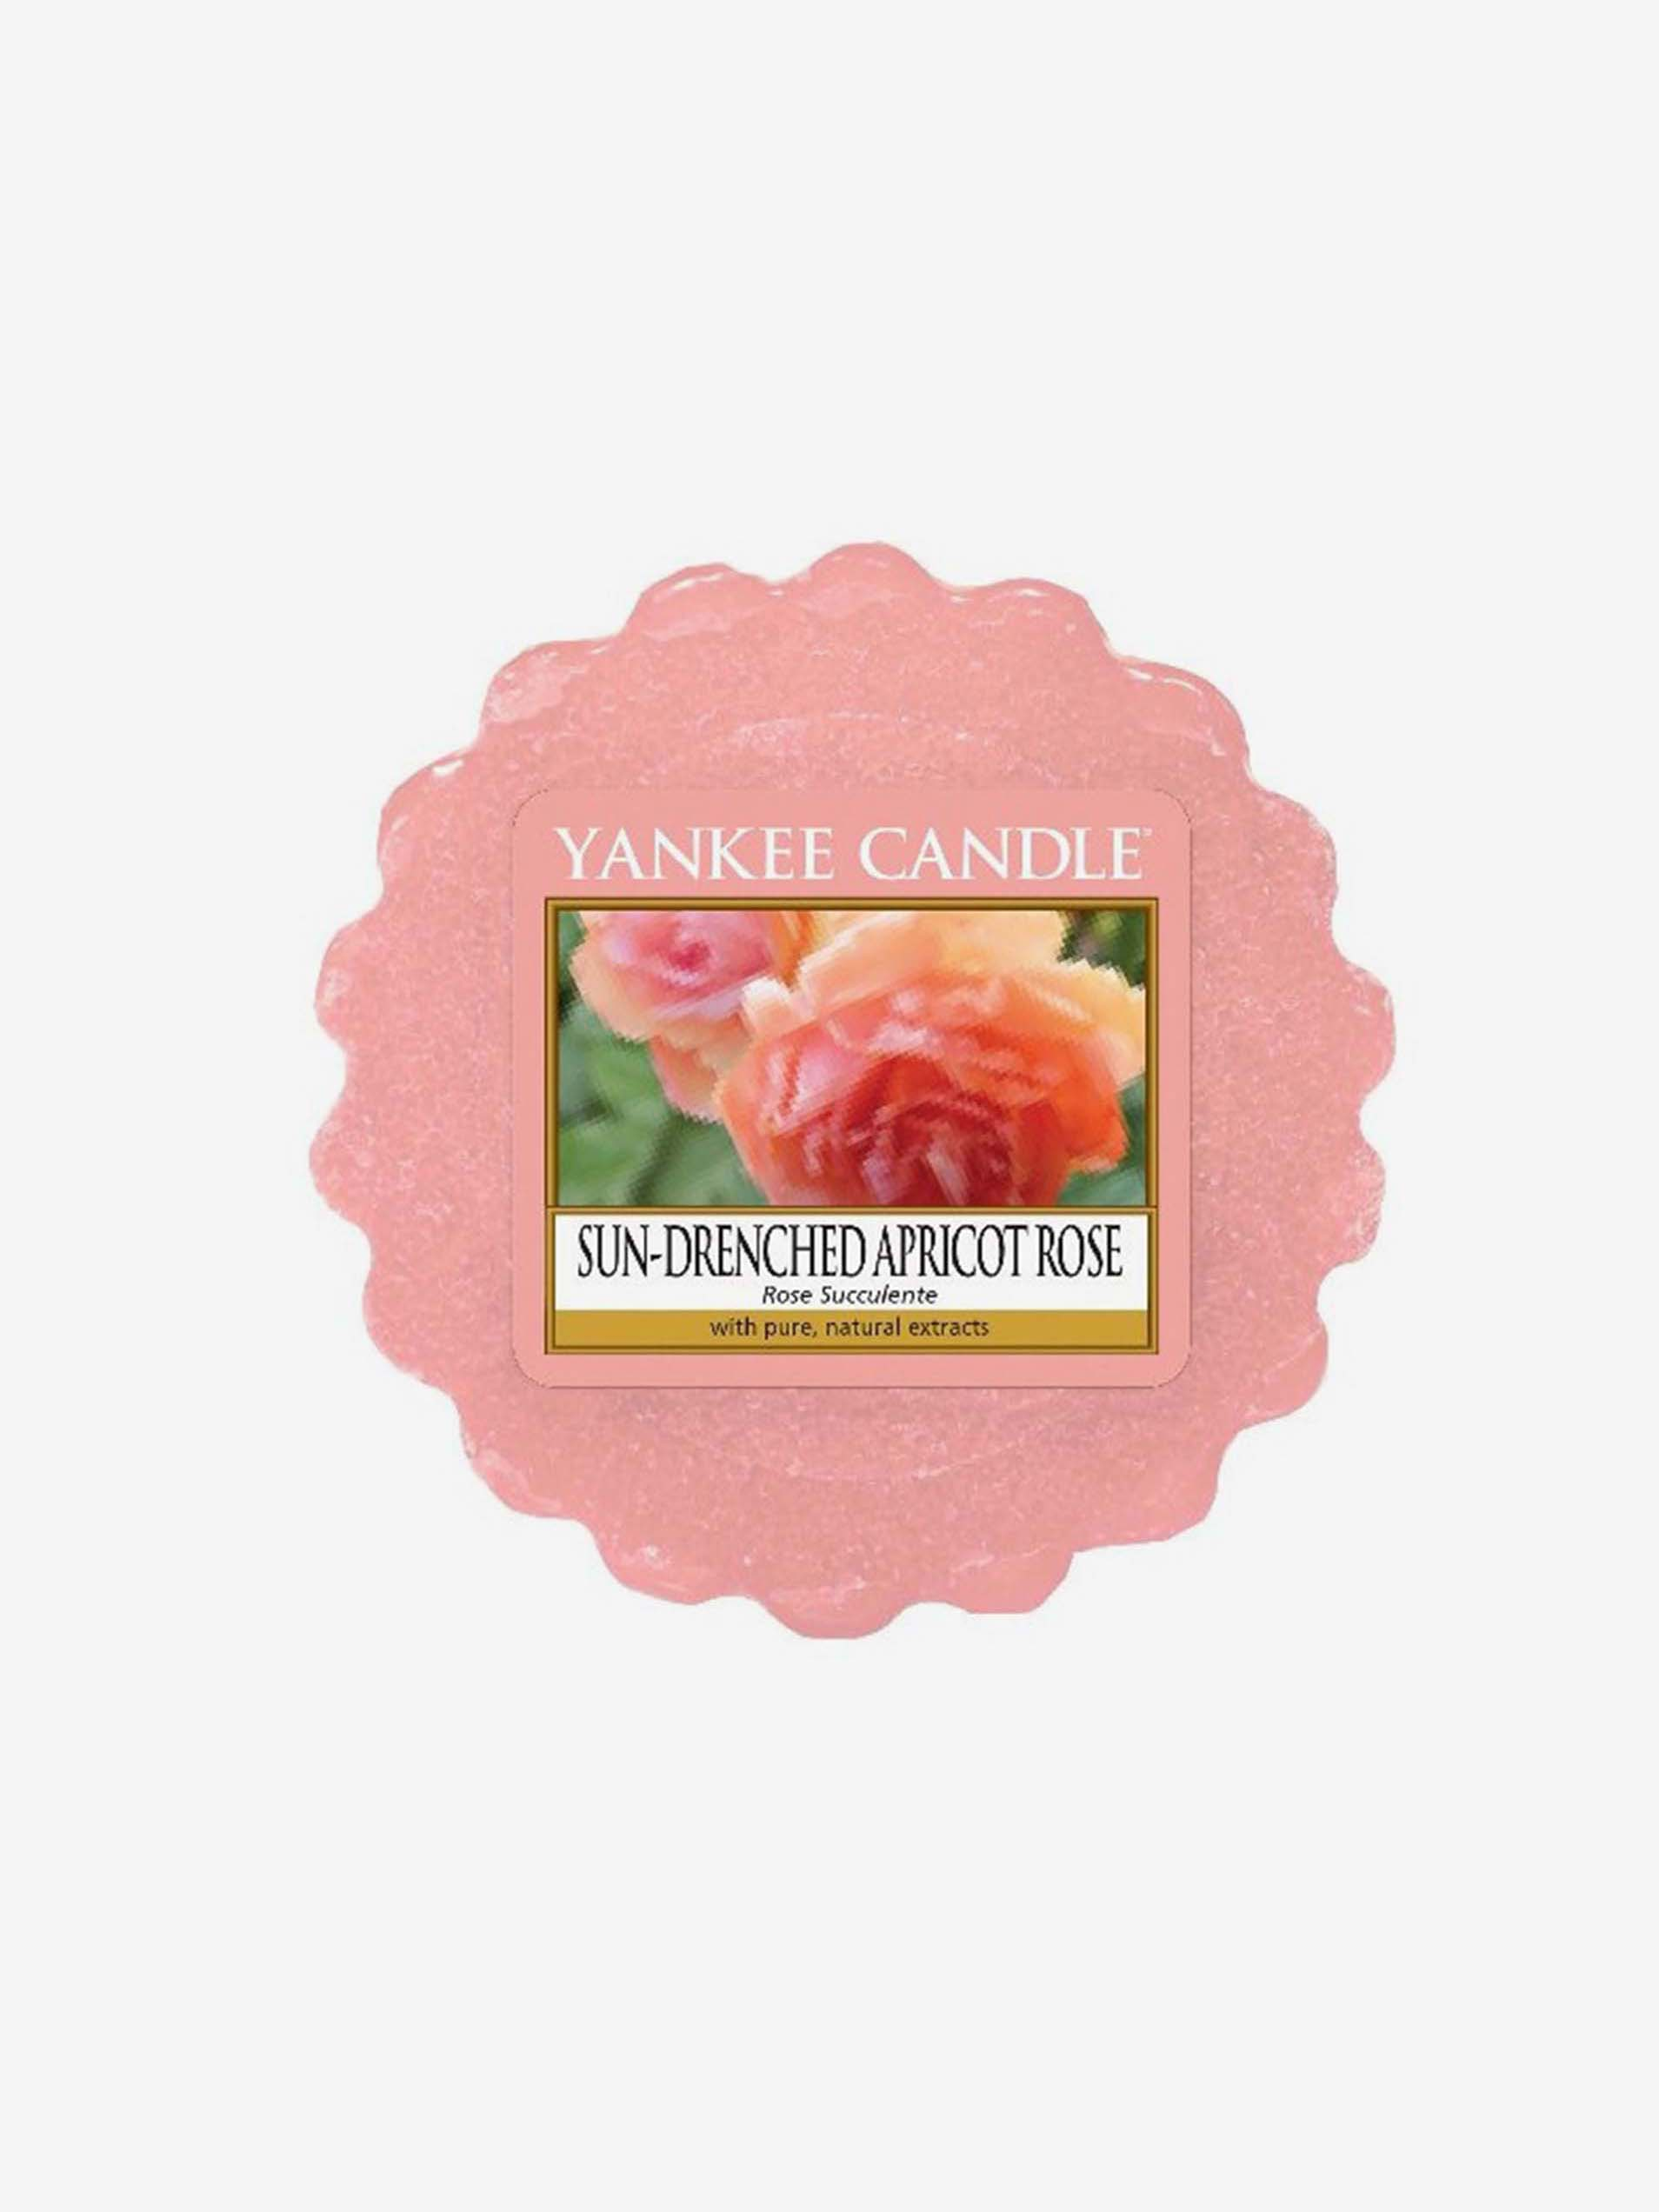 Yankee Candle vonný vosk do aromalampy Sun-Drenched Apricot Rose